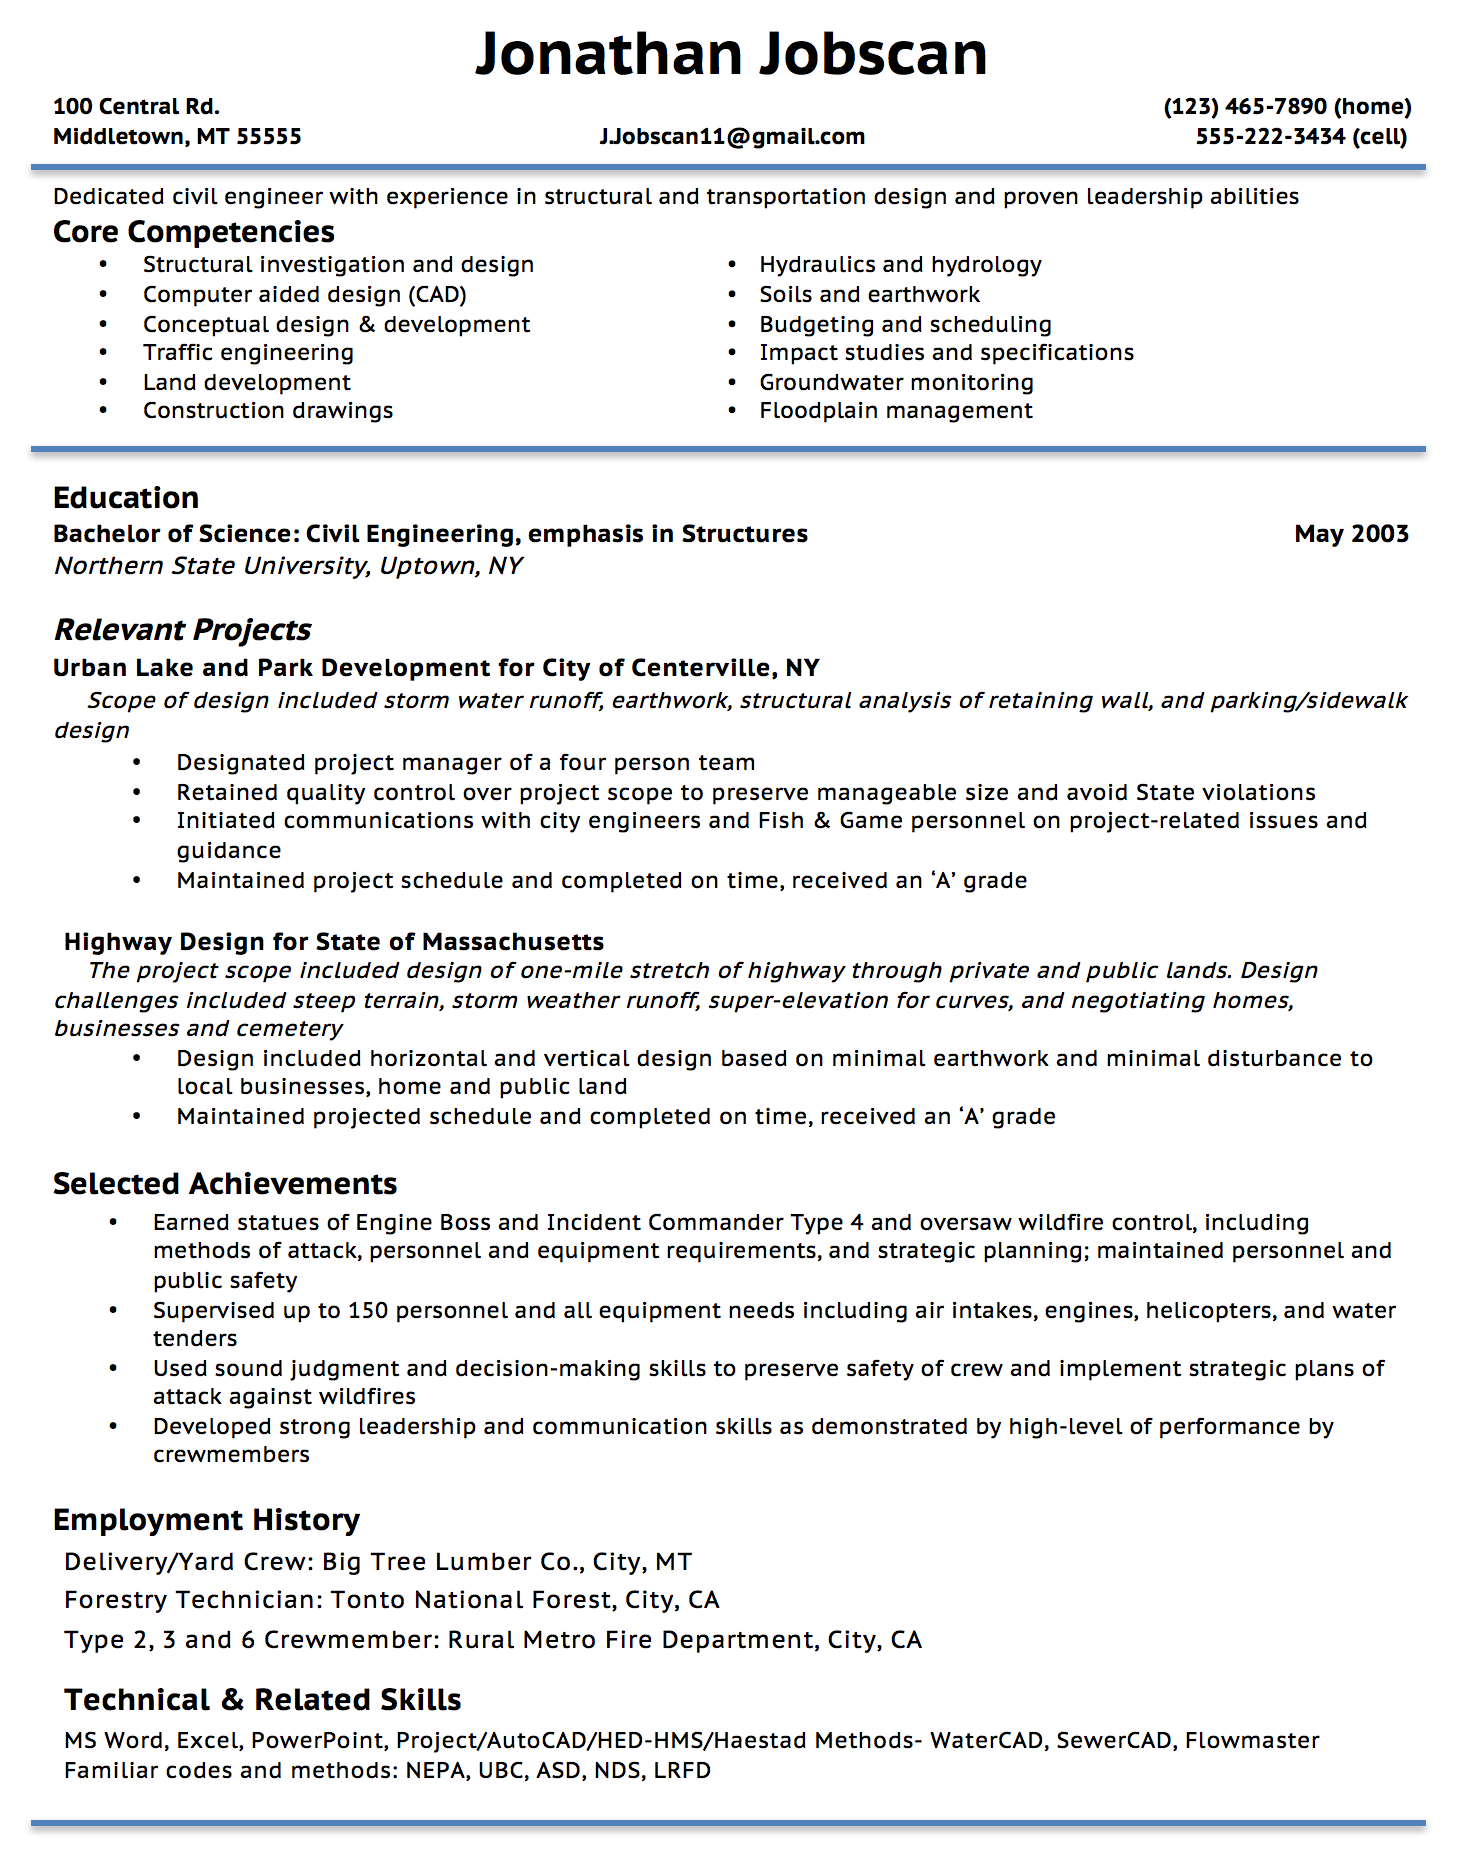 Opposenewapstandardsus  Stunning Resume Writing Guide  Jobscan With Exquisite Example Of A Functional Resume Format With Delightful Resume Skill Examples Also Summary Of Qualifications Resume In Addition How To Build A Good Resume And Rn Resume Template As Well As Sample College Student Resume Additionally Indeed Resume Builder From Jobscanco With Opposenewapstandardsus  Exquisite Resume Writing Guide  Jobscan With Delightful Example Of A Functional Resume Format And Stunning Resume Skill Examples Also Summary Of Qualifications Resume In Addition How To Build A Good Resume From Jobscanco